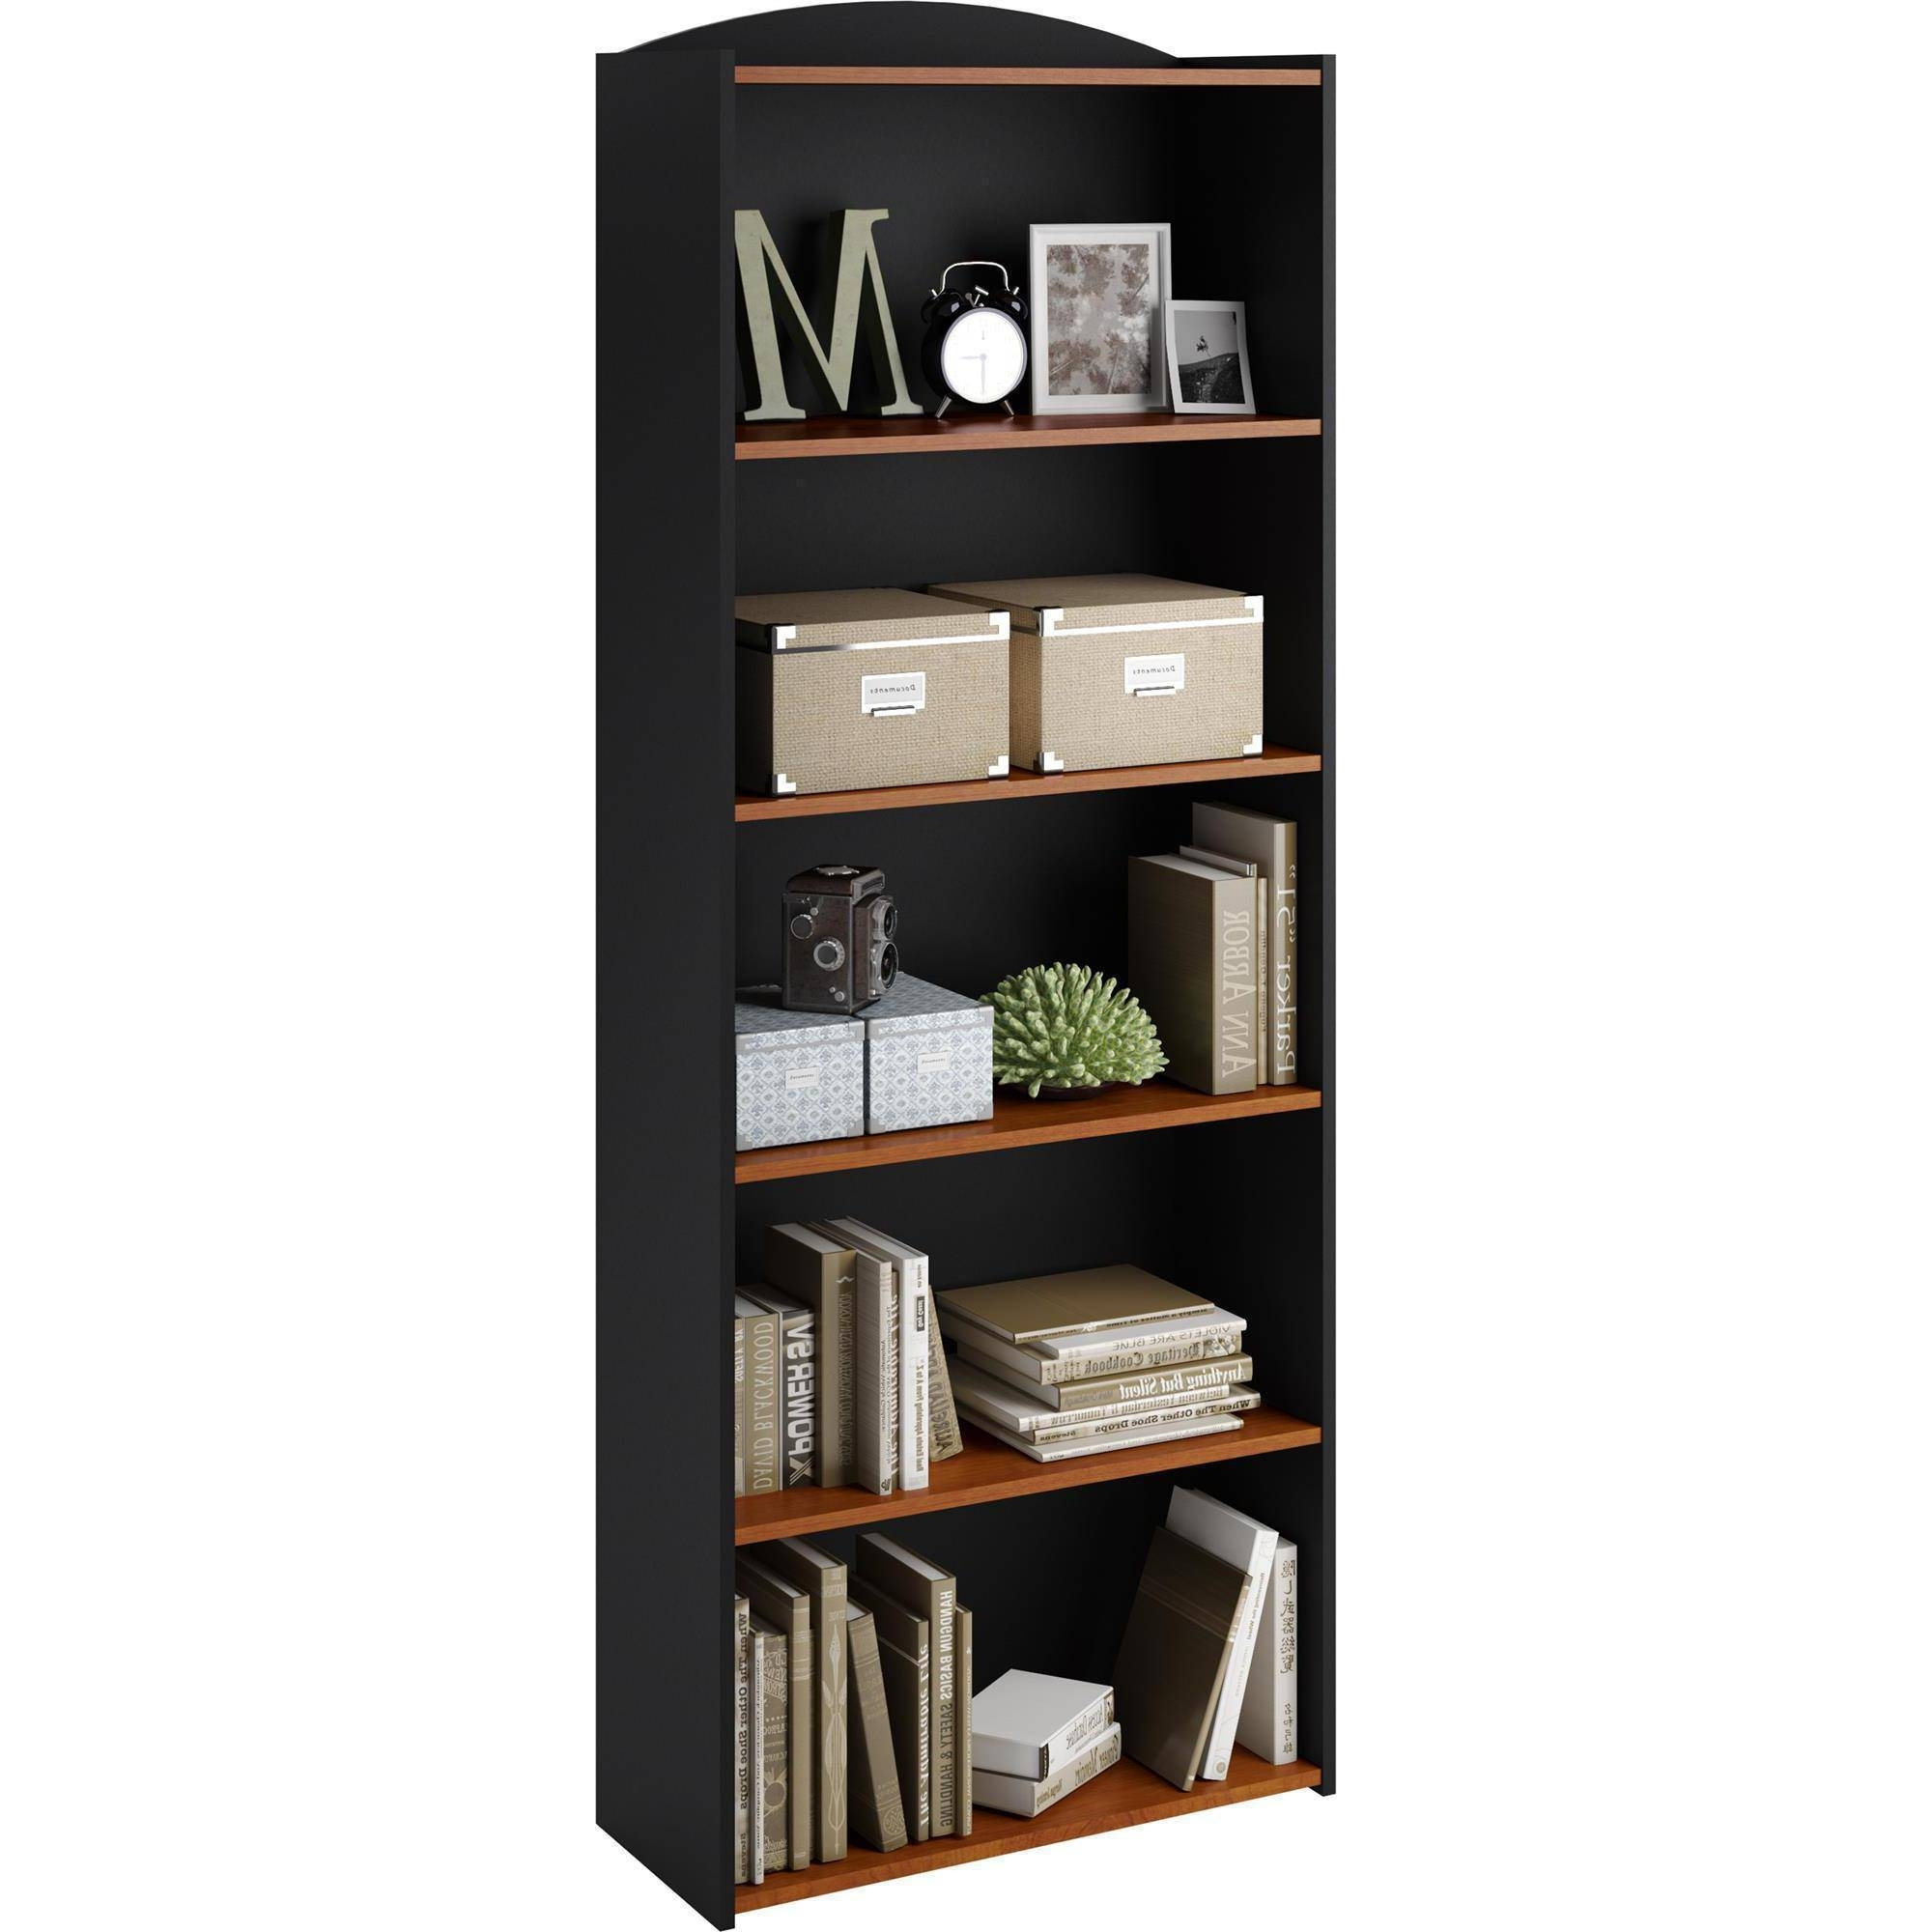 South Shore 5 Shelf Bookcases Throughout Most Up To Date Mainstays 5 Shelf Bookcase, Multiple Colors – Walmart (View 11 of 15)